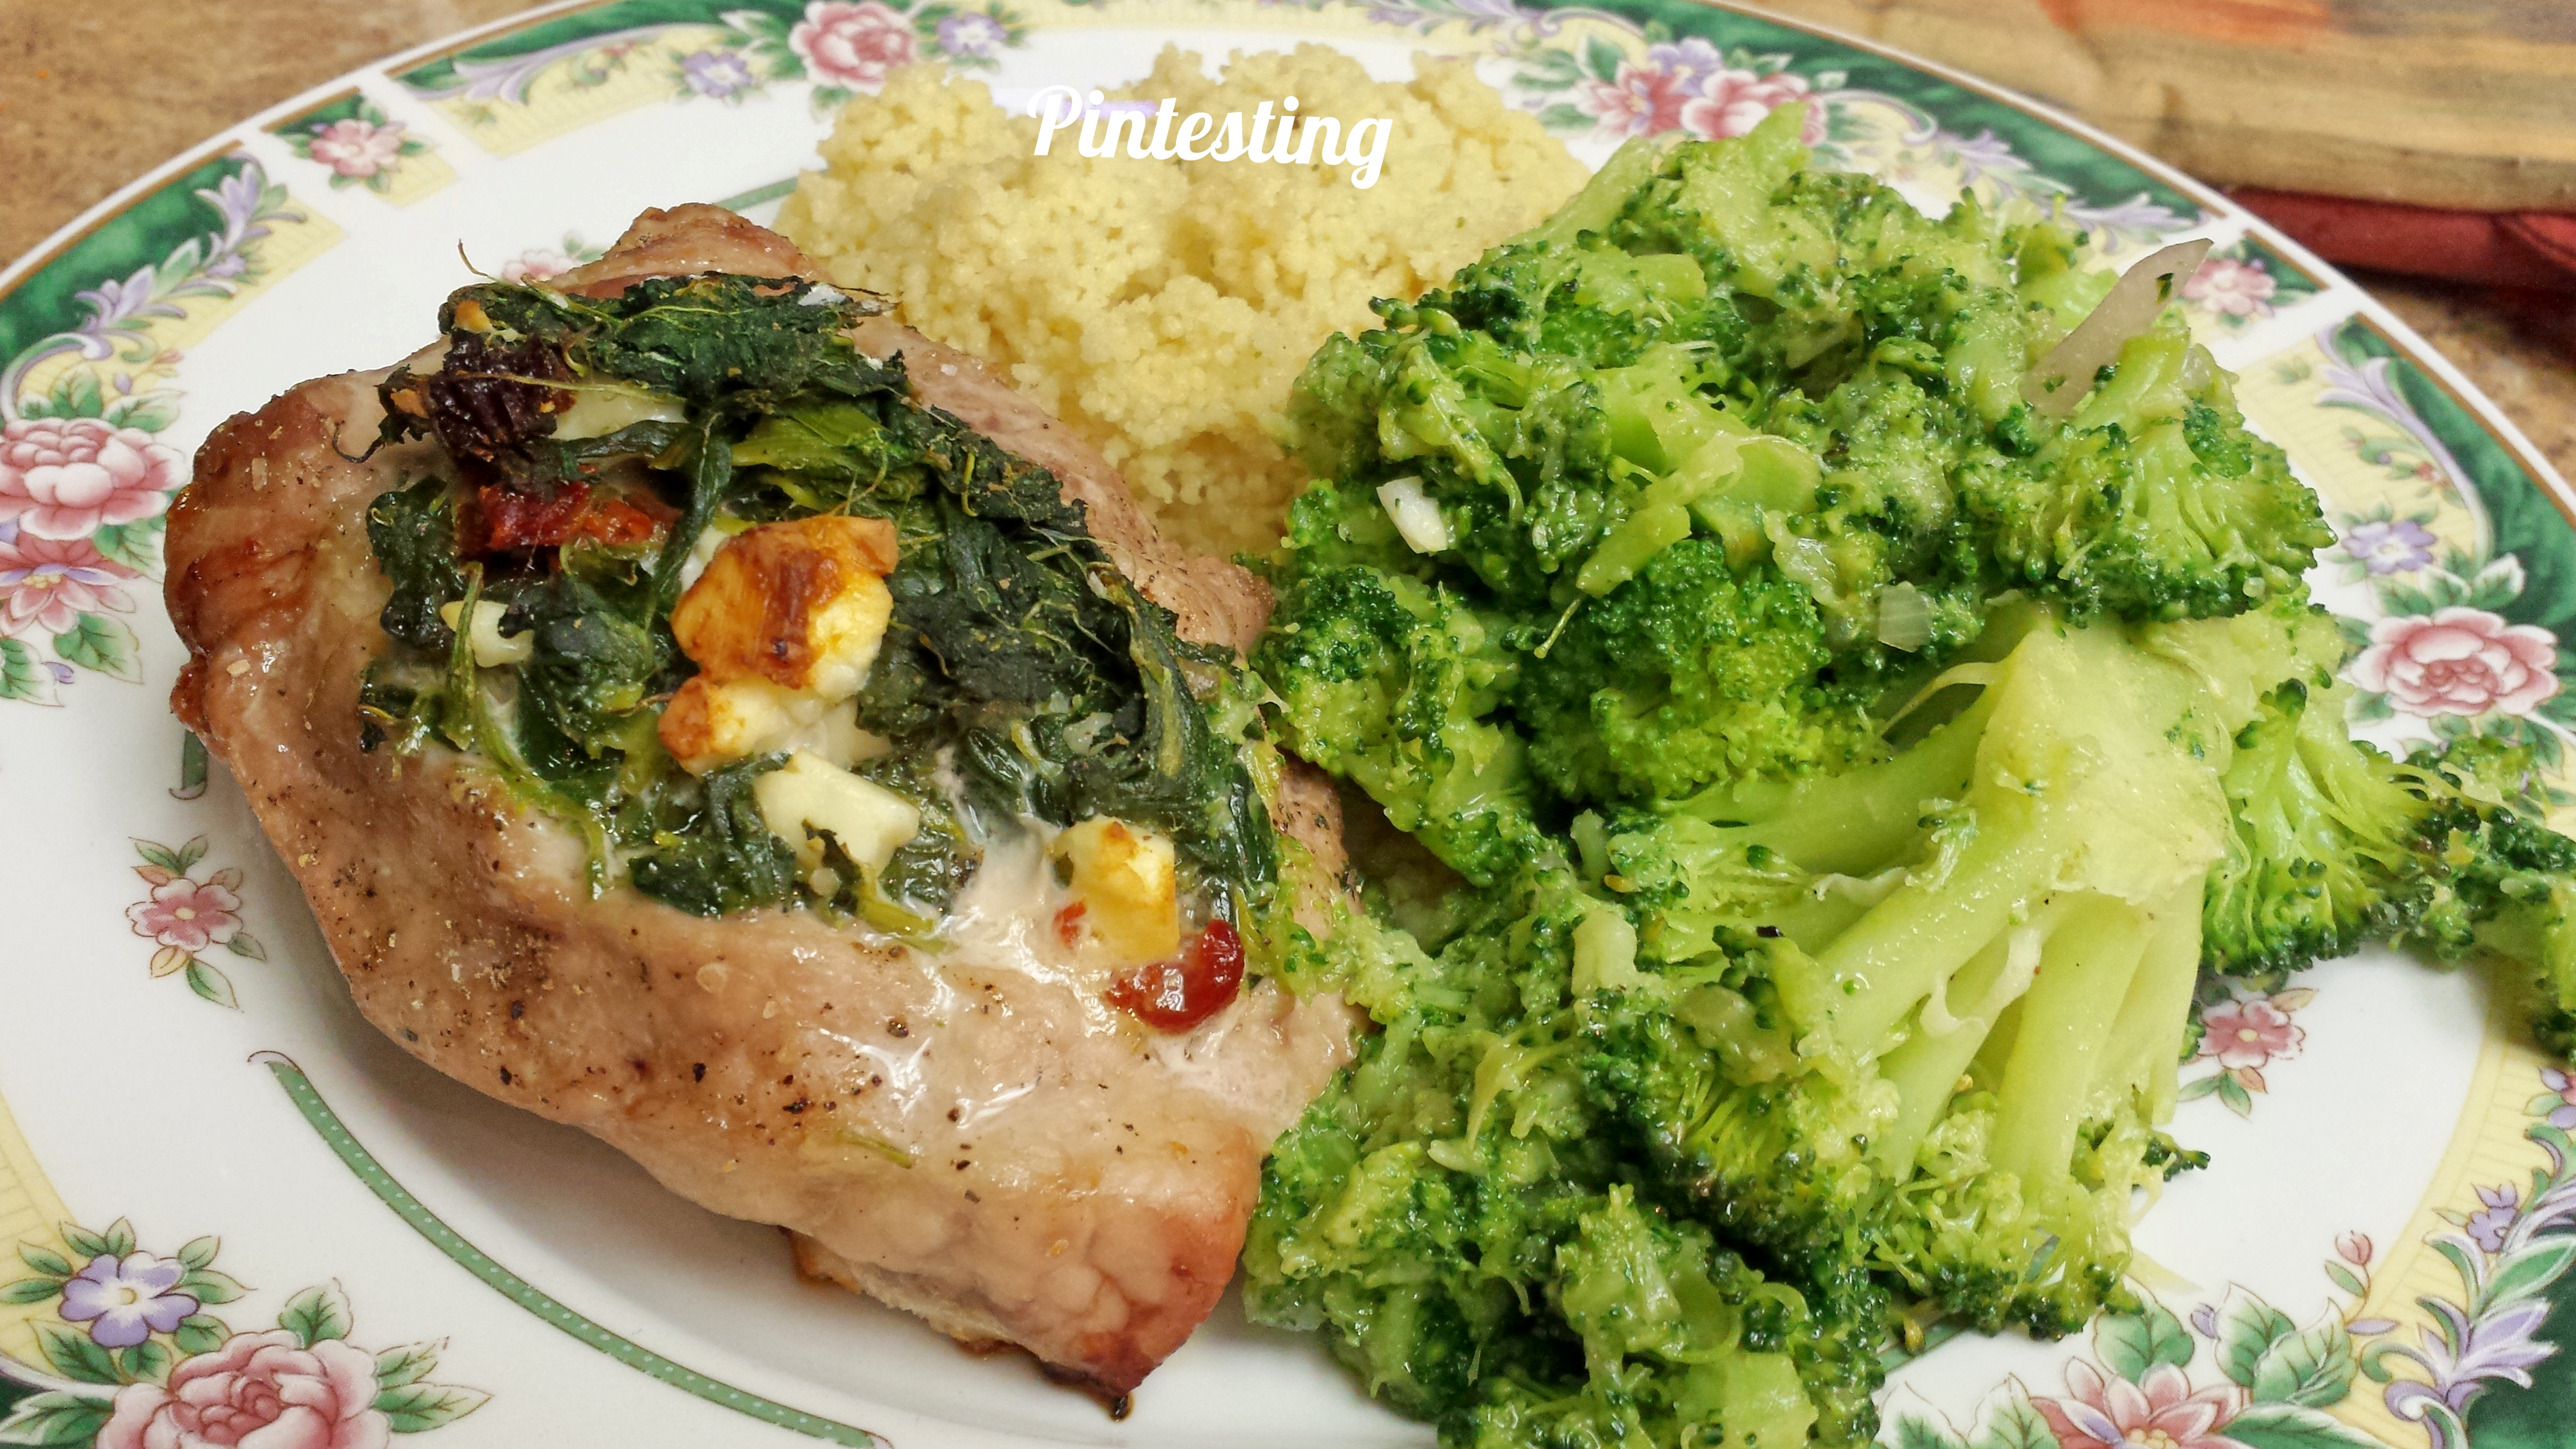 Pintesting - Spinach, Feta and Sundried Tomato Stuffed Pork Chops - Supper